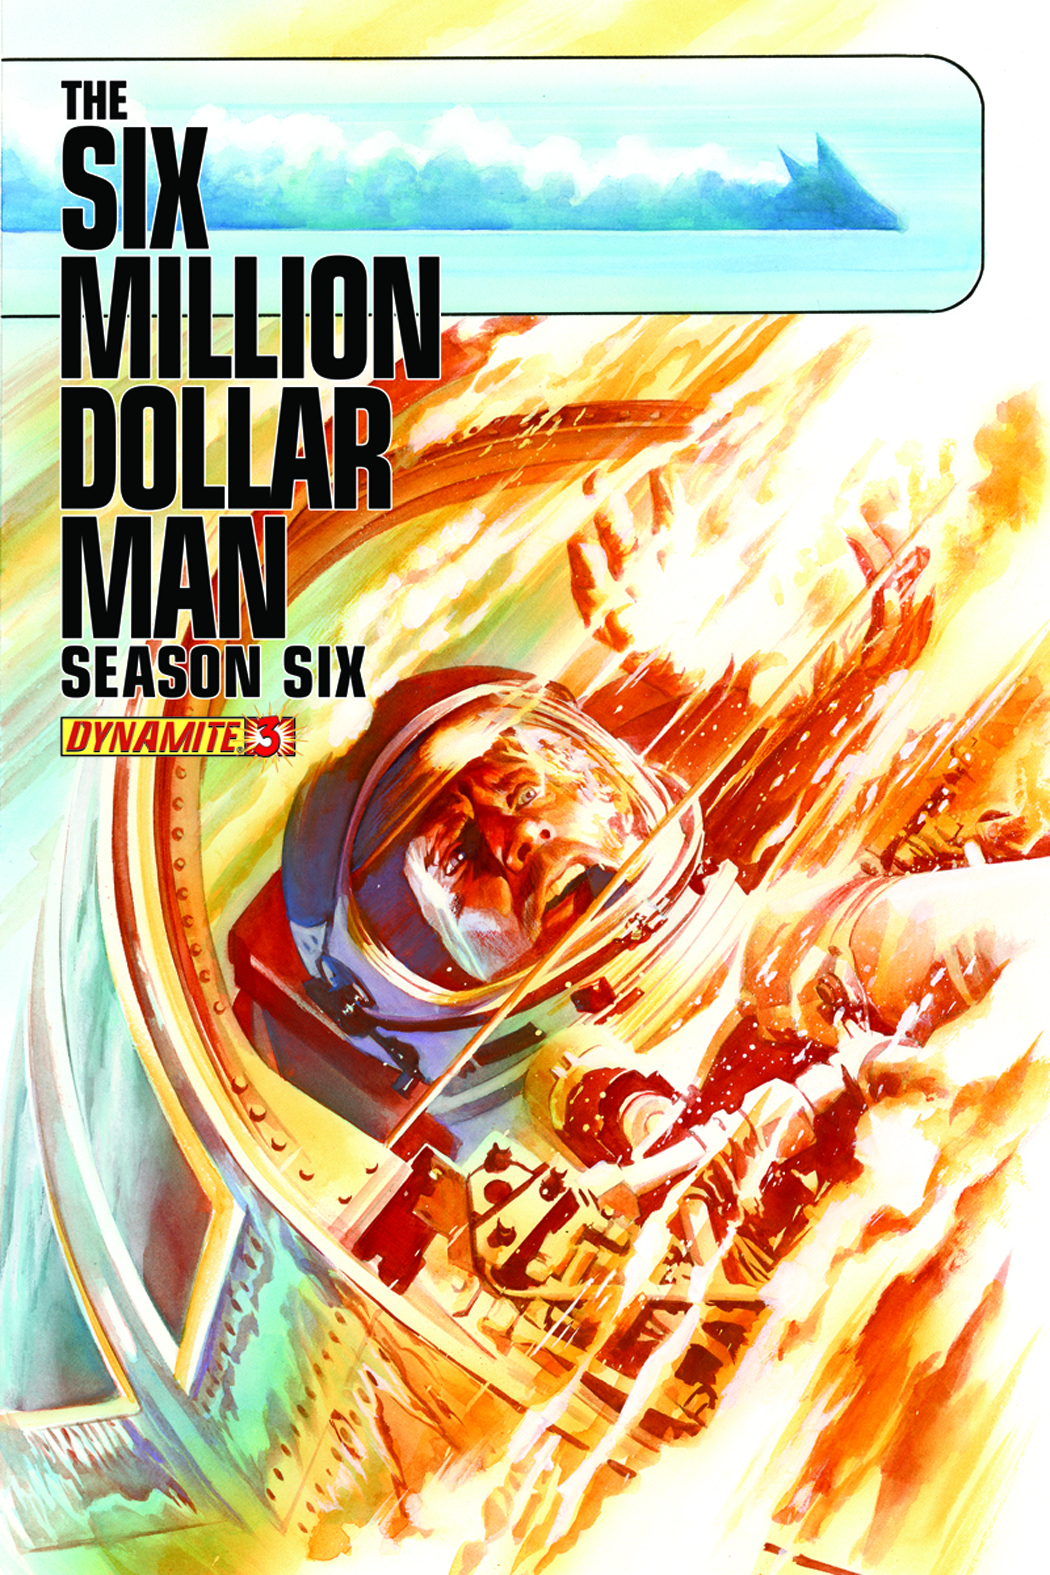 SIX MILLION DOLLAR MAN SEASON 6 #3 ROSS CVR